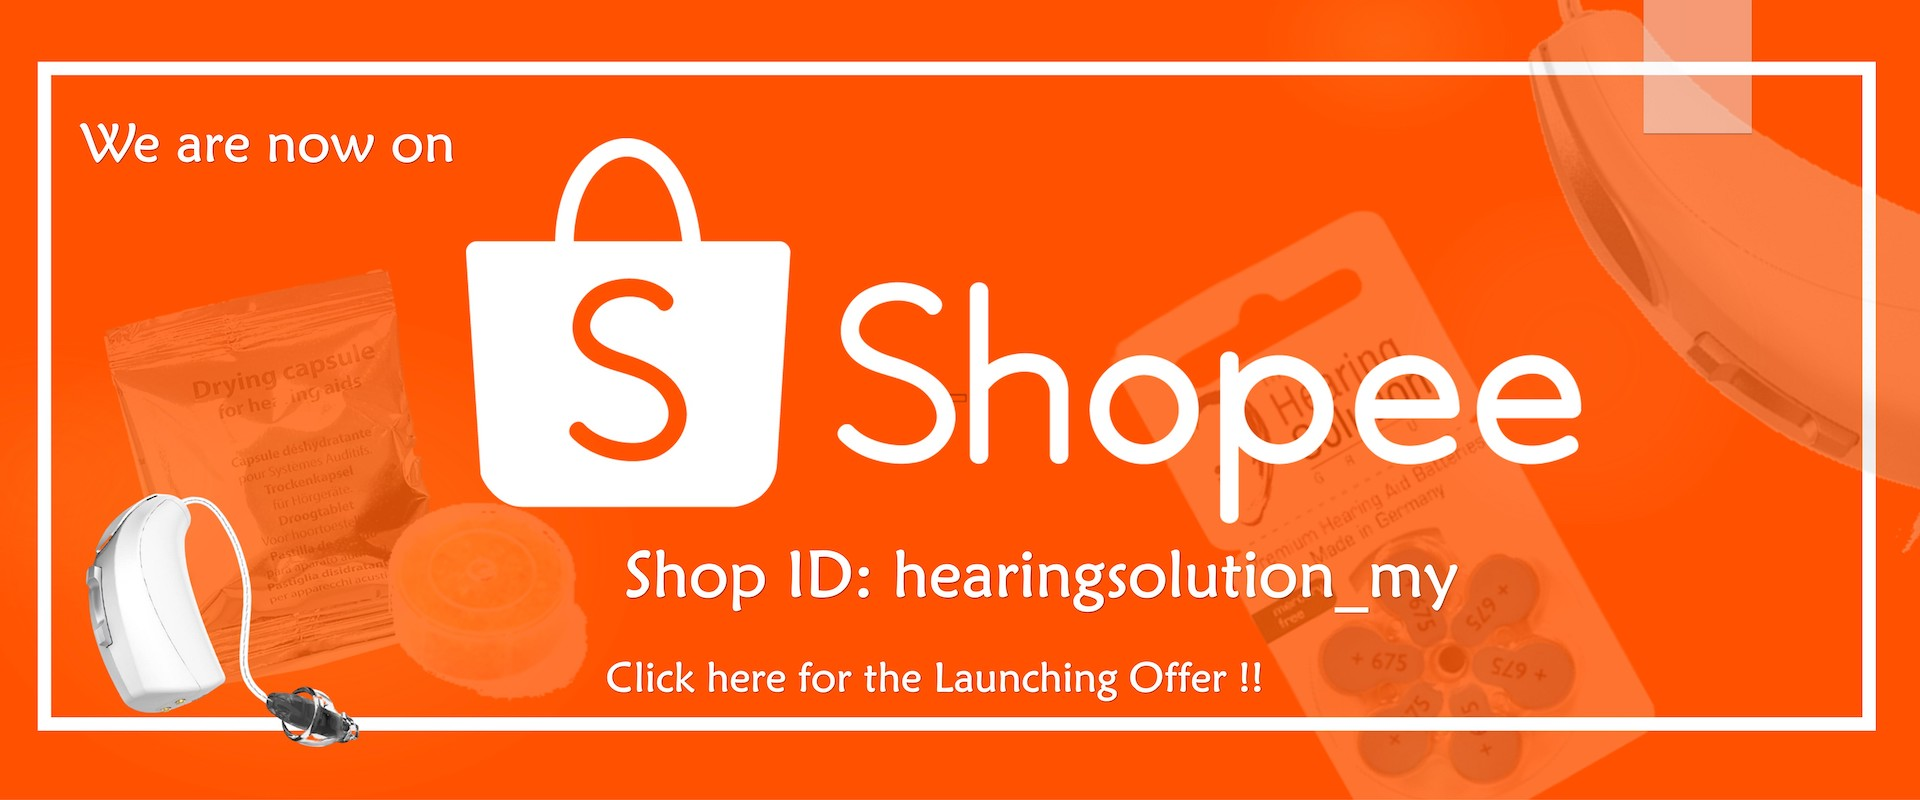 Shopee Hearing Solution